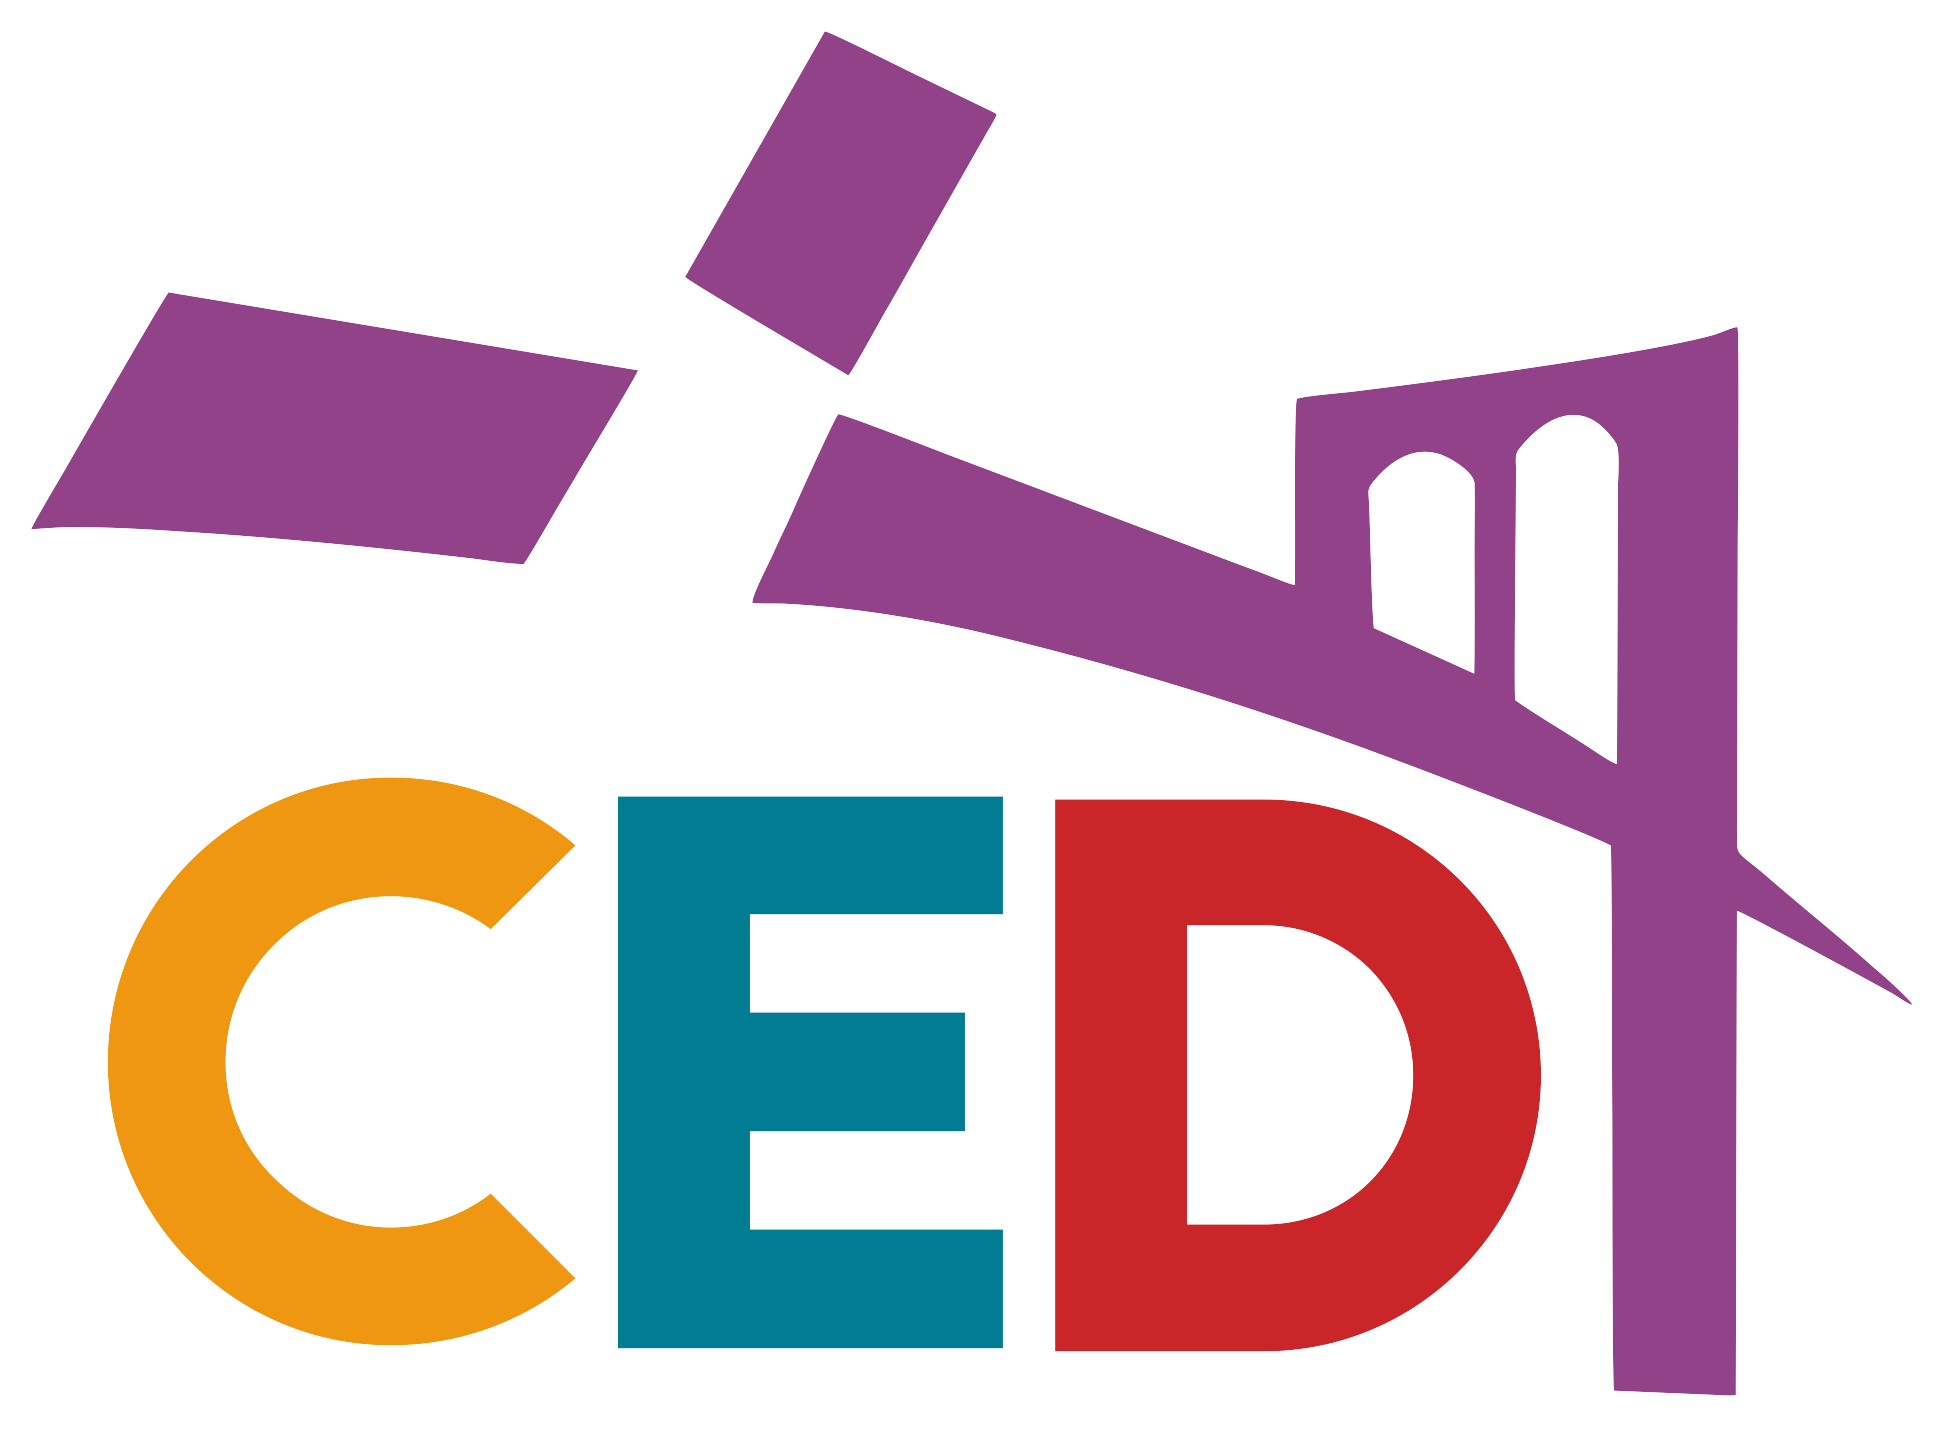 Missions clipart community resource. Cedi empowerment and development